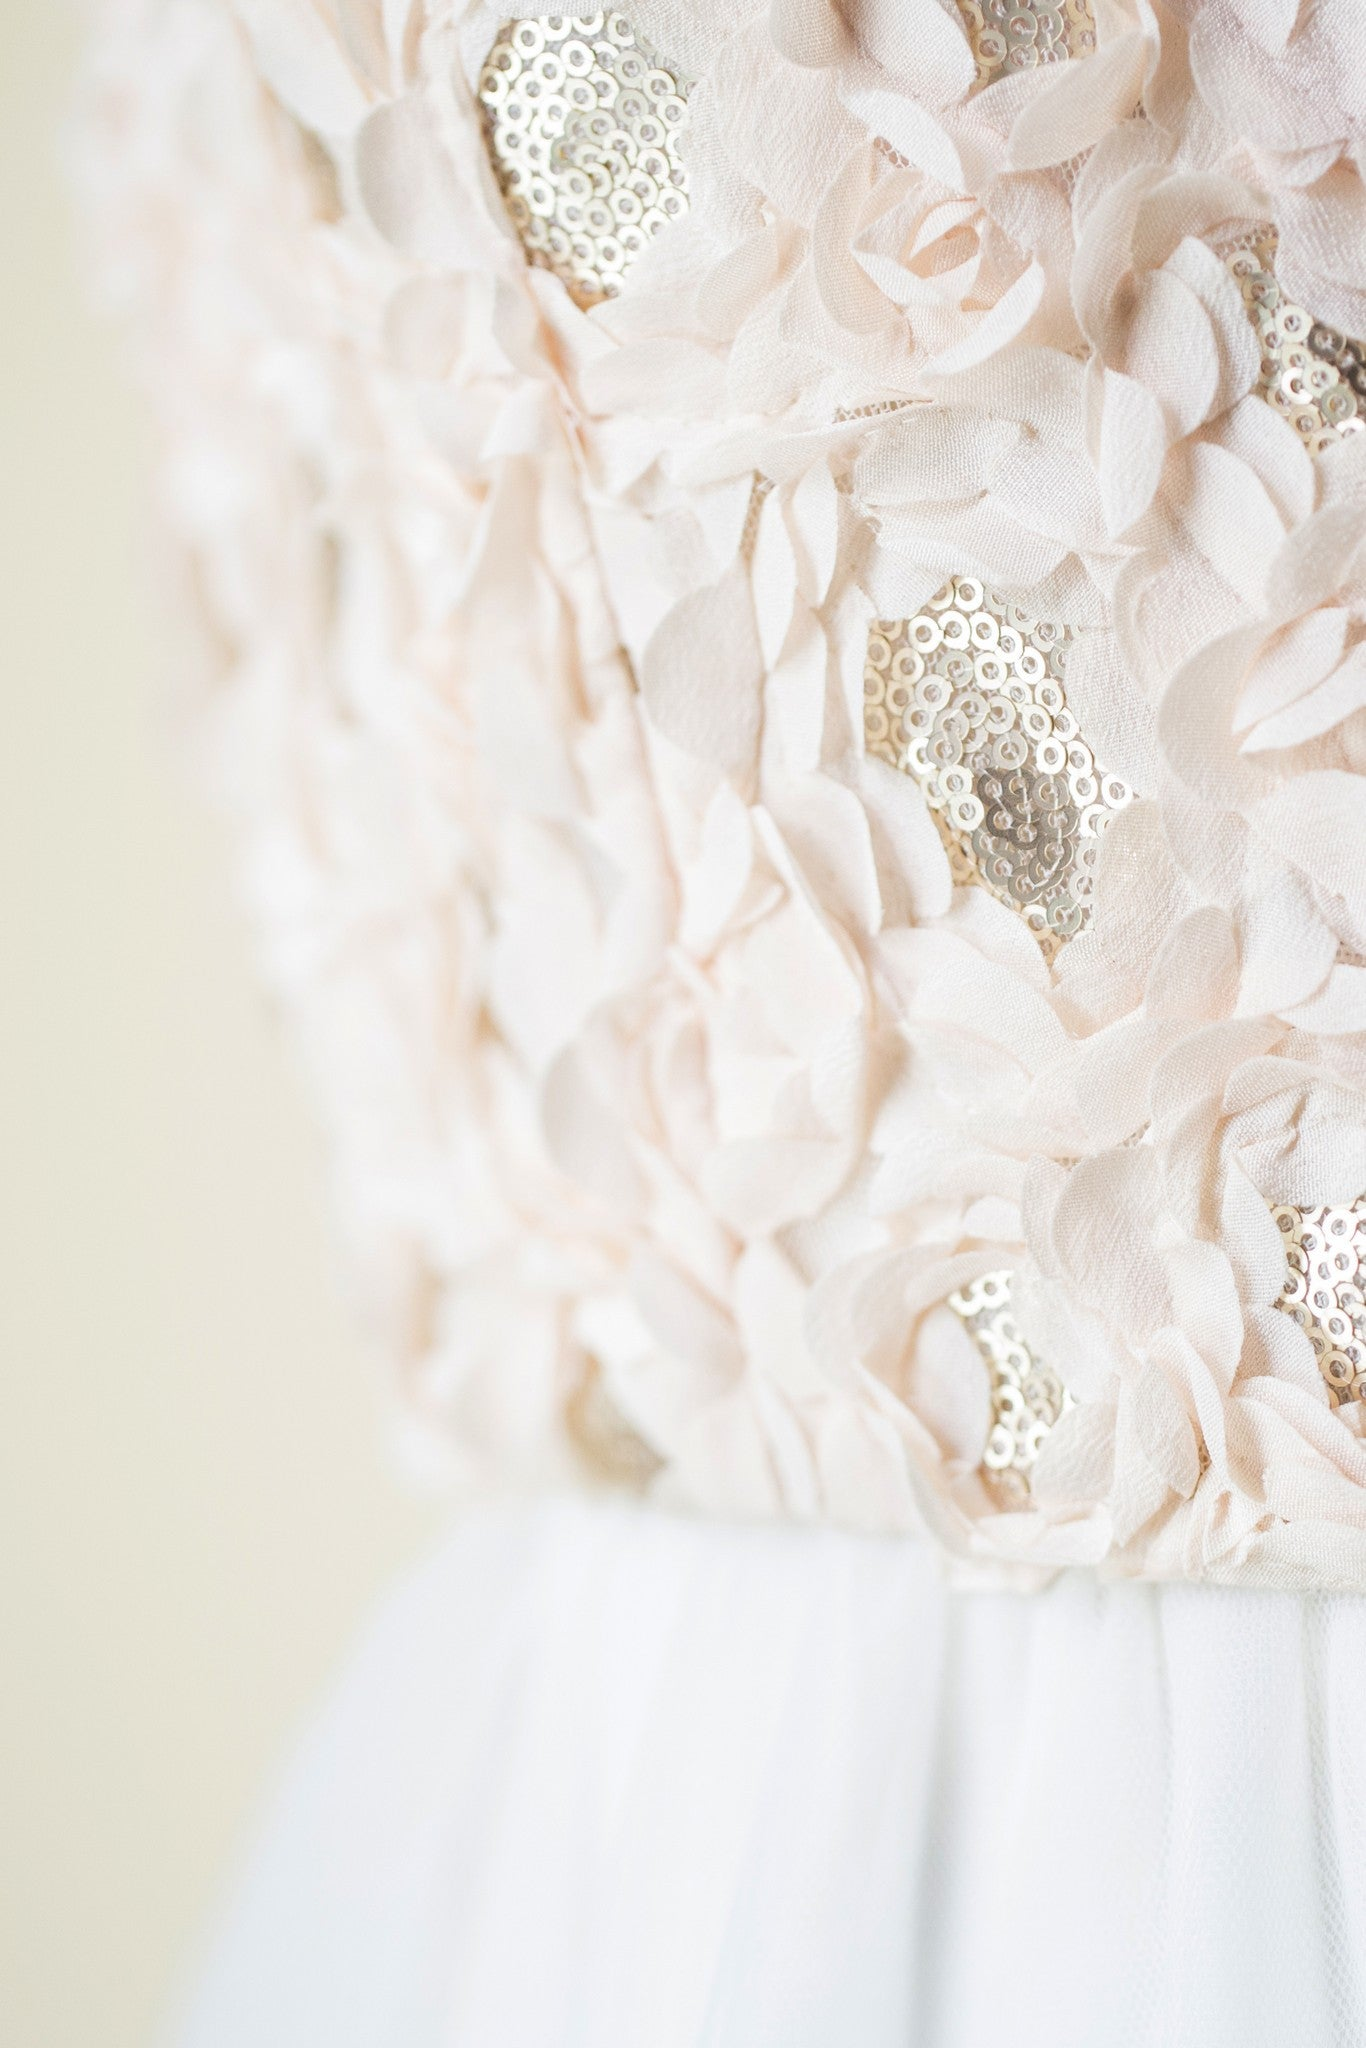 Detail: Fair Trade, Eco, Indie & Ethical handmade wedding dress with pink wedding gown color & natural waist & open back